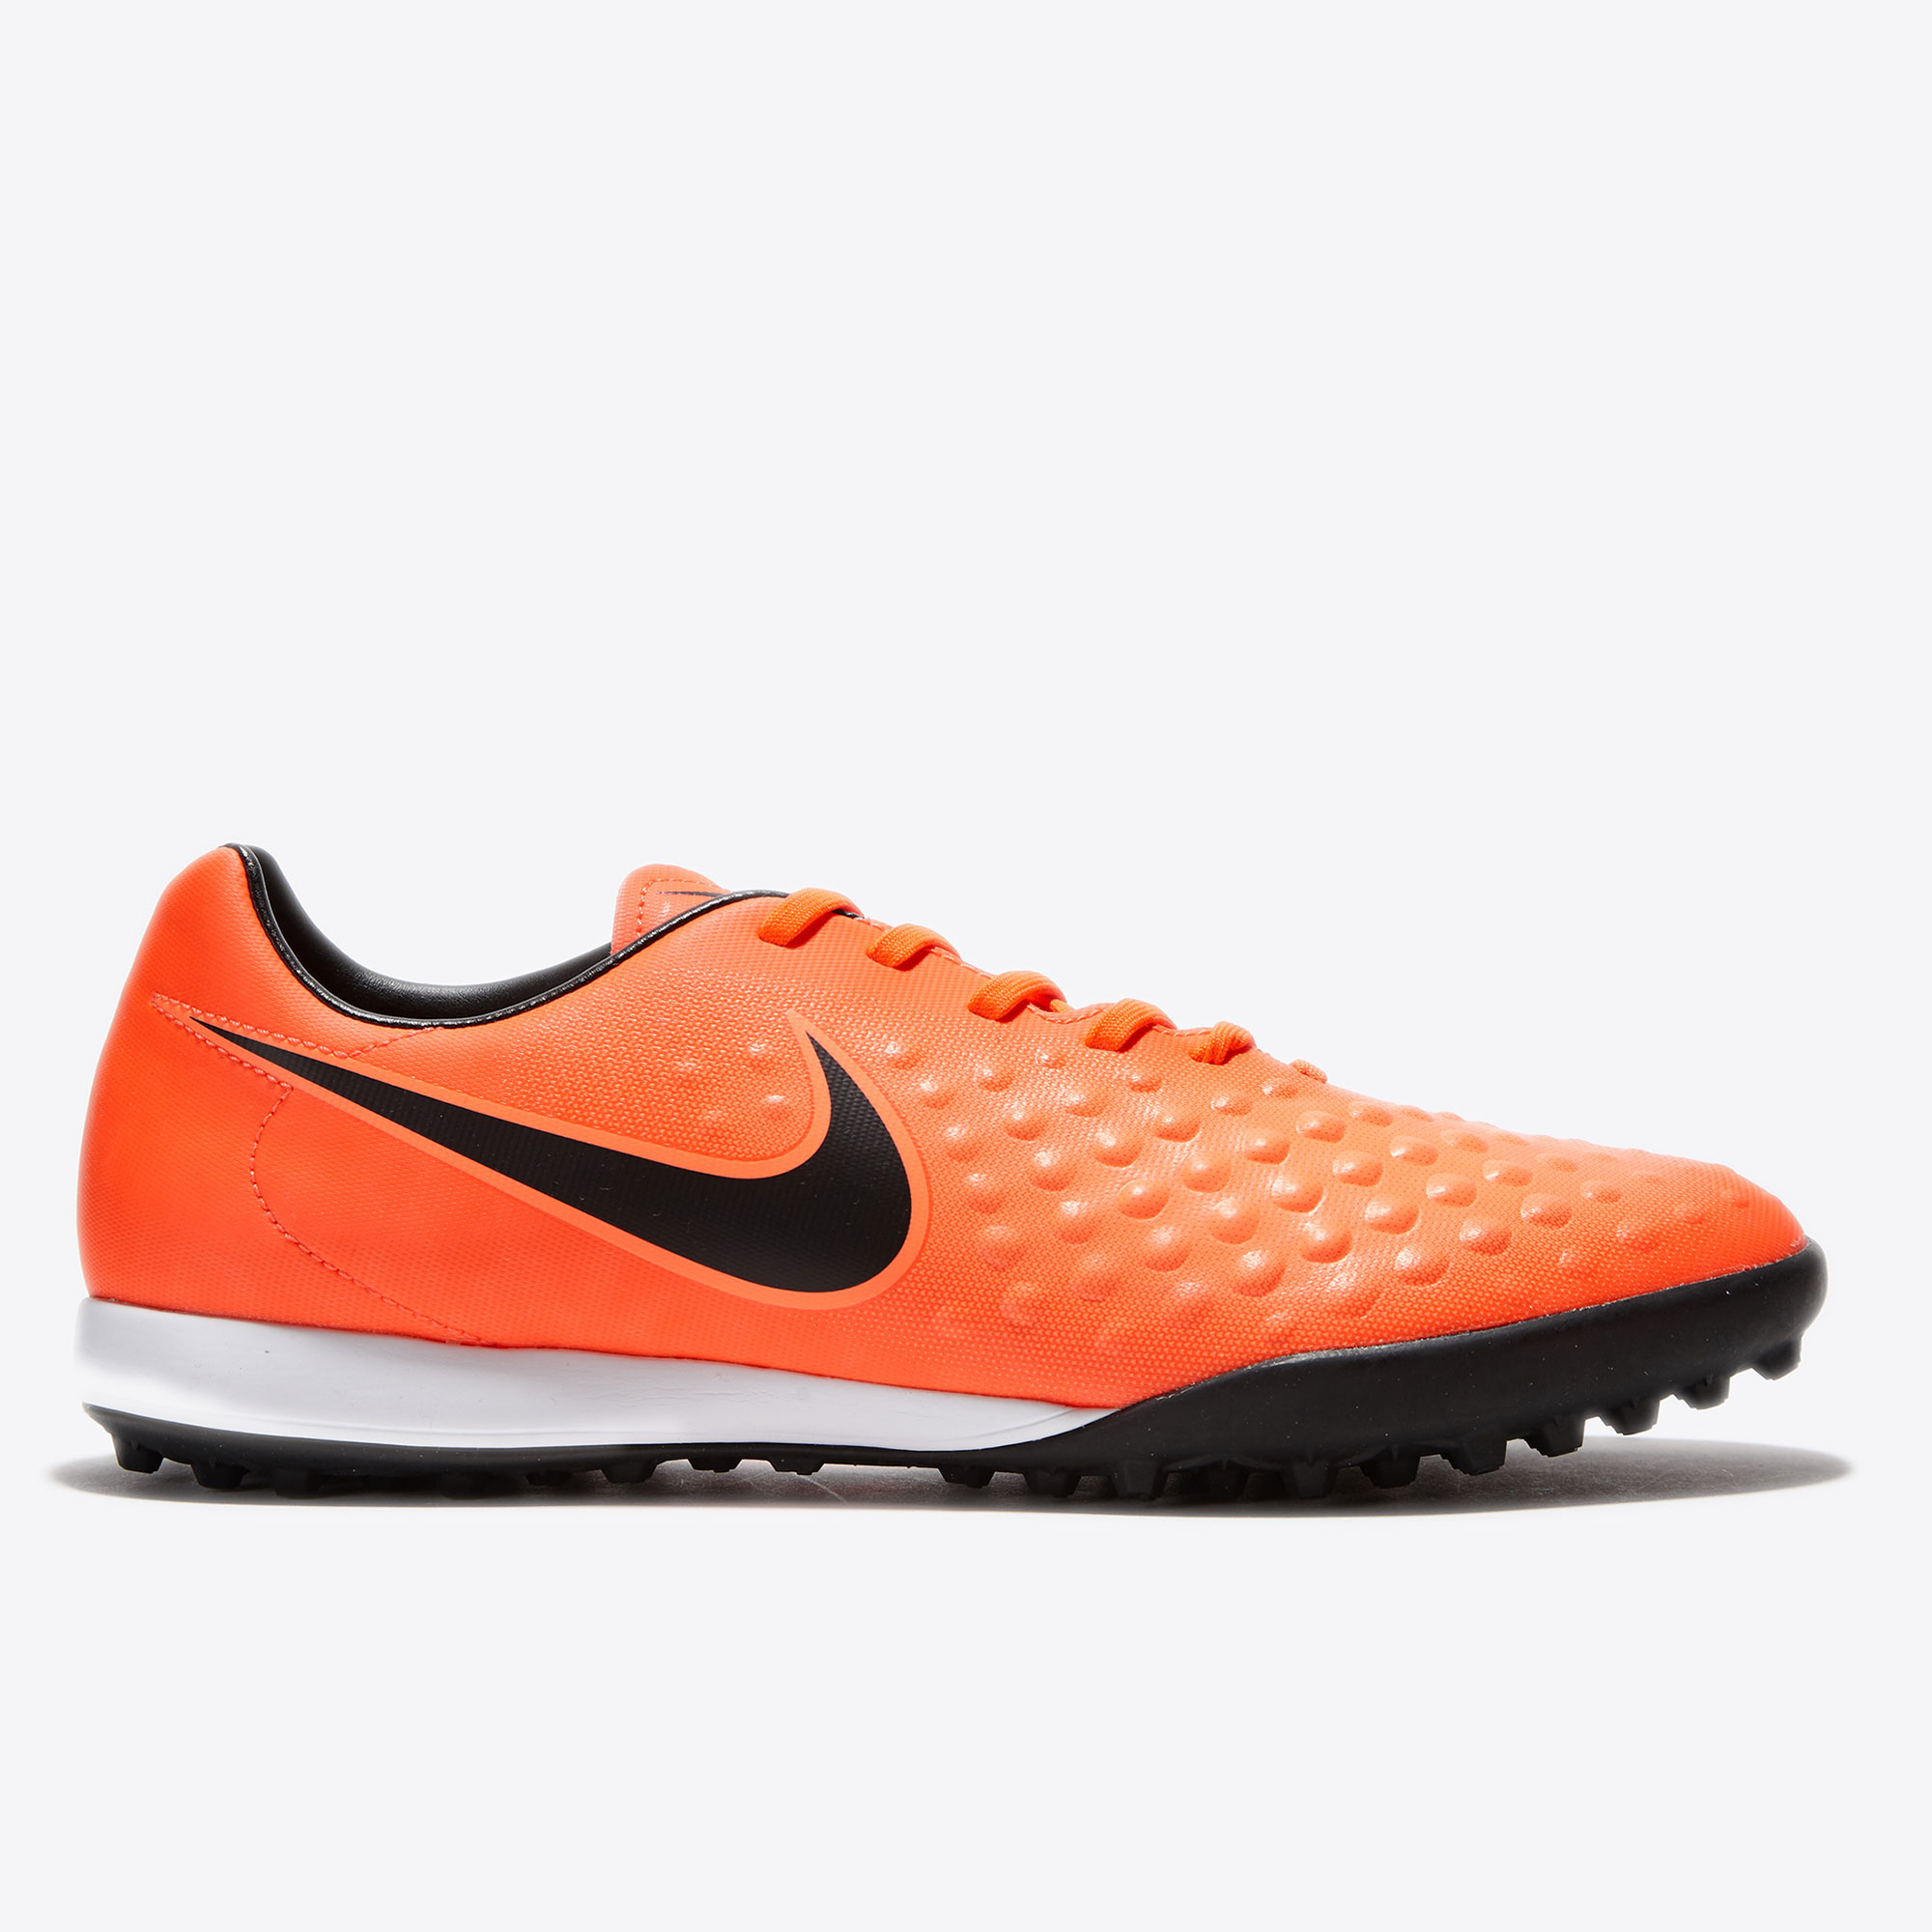 Nike Magista Onda II Astroturf Trainers - Total Crimson/Black/Bright M